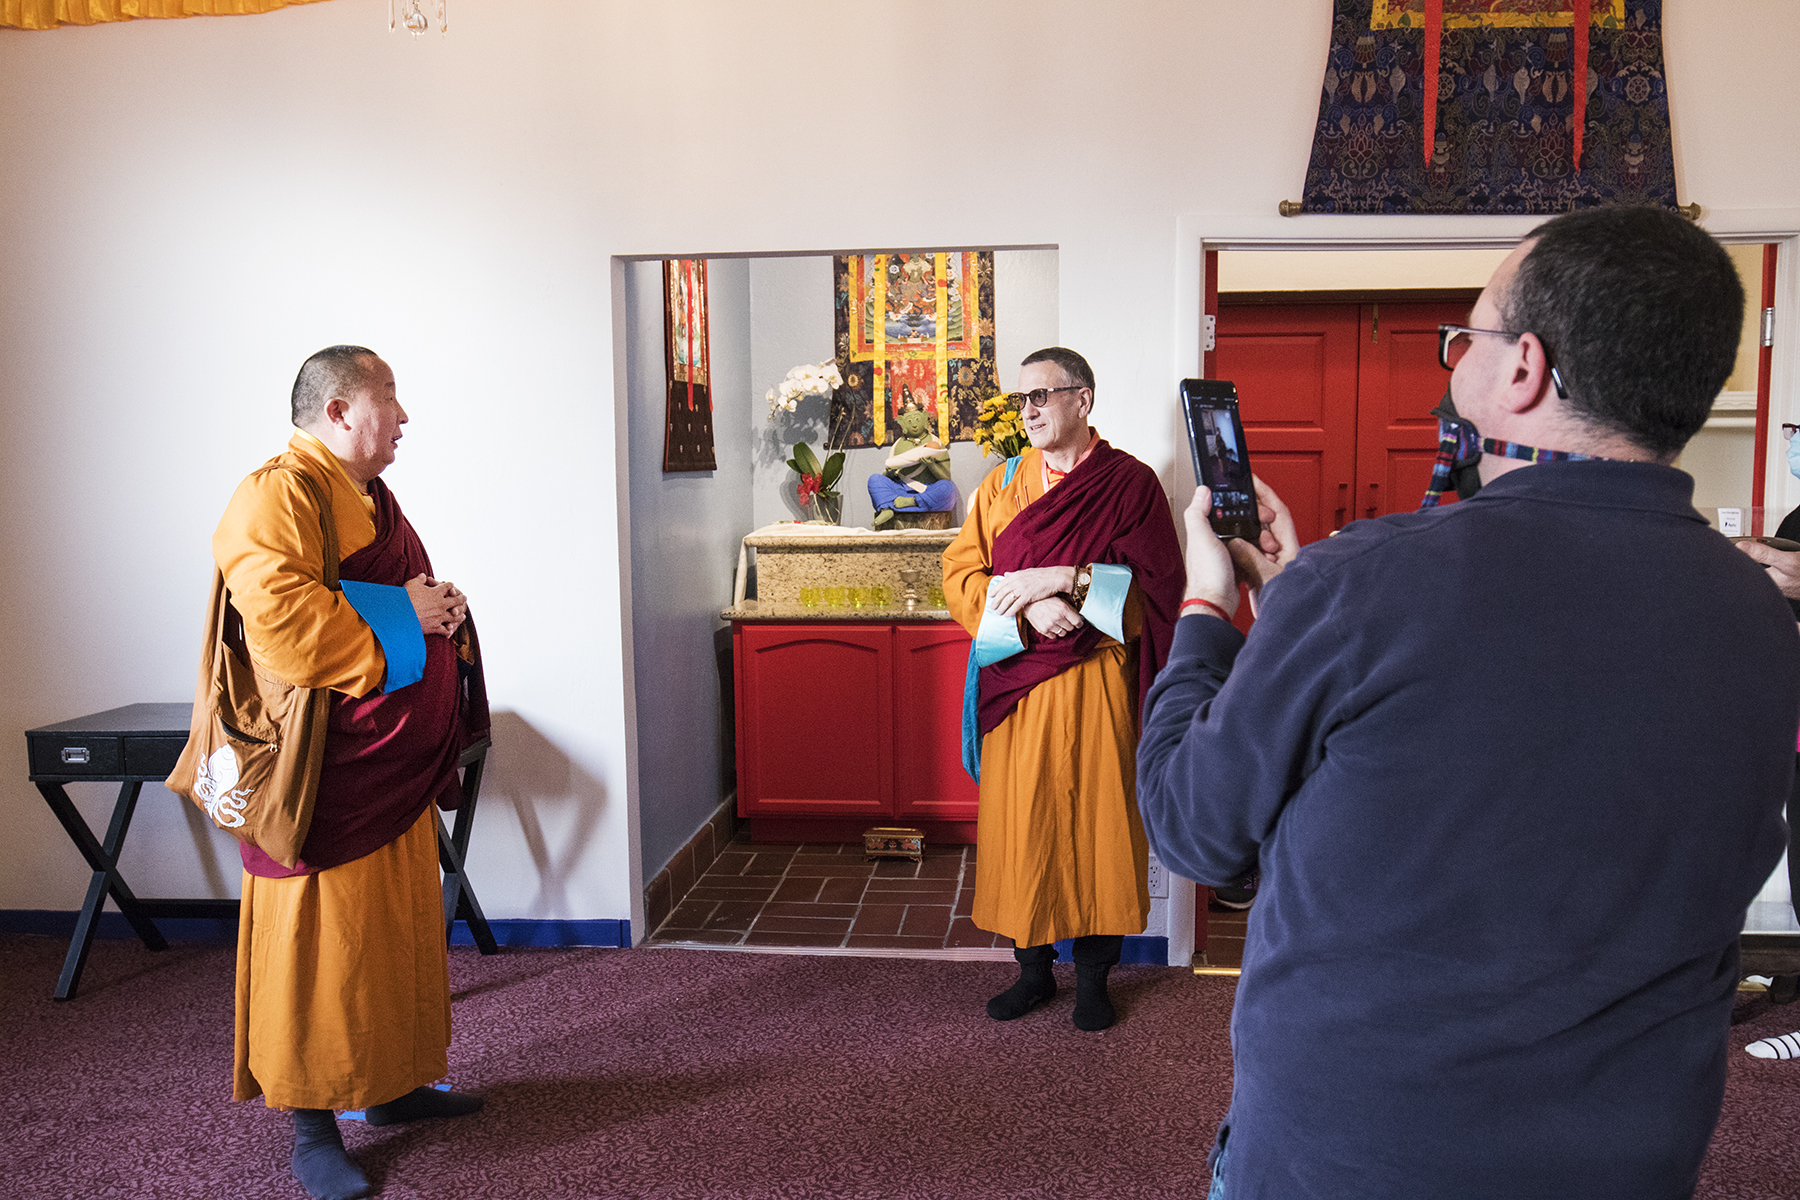 Lama Yeshe Jinpa and Geshe Damchoebaazar Gurjav bless the tara shrine as part ofLosar 2021 / 2148 Celebration